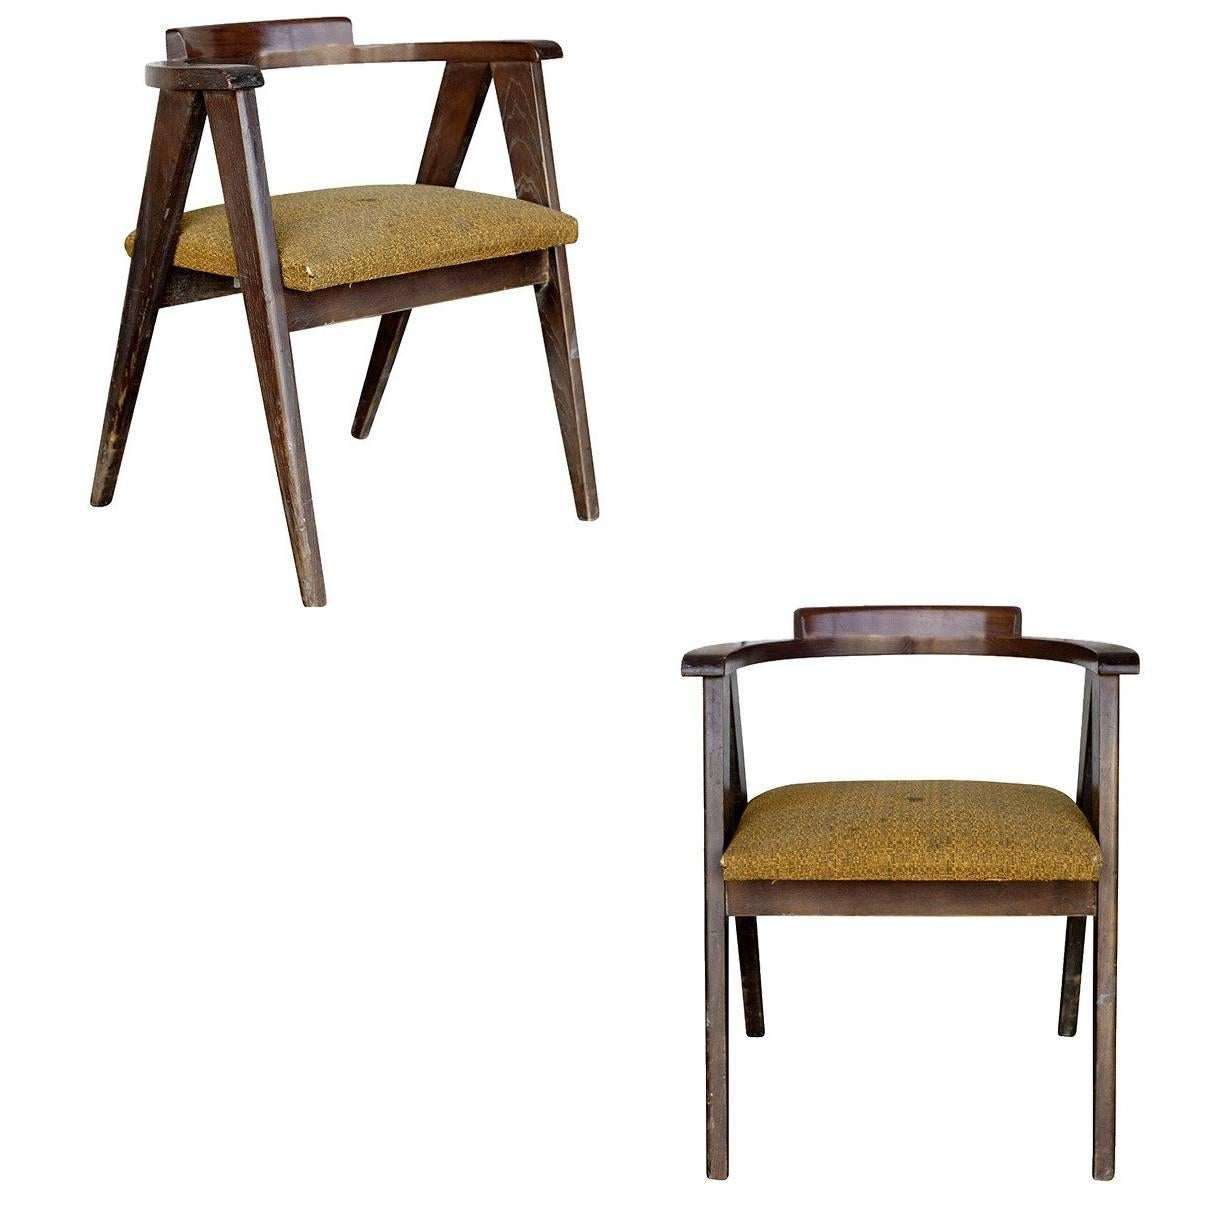 Superbe James Mont Style Asian Inspired Dining Chairs **Sature Sale**